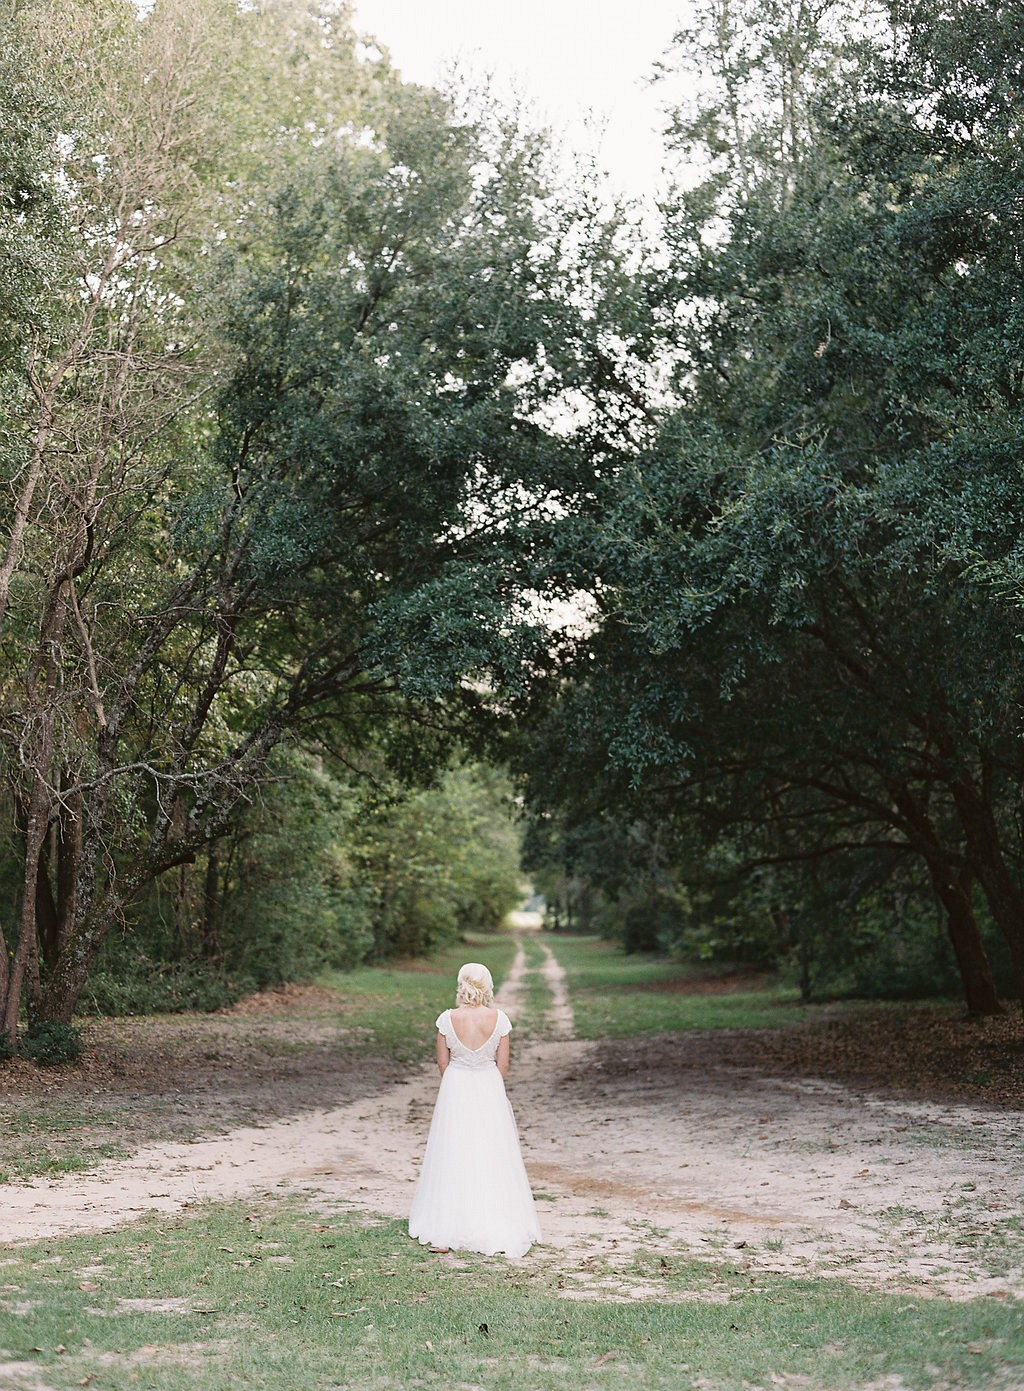 Keeping your wedding style serene and minimal